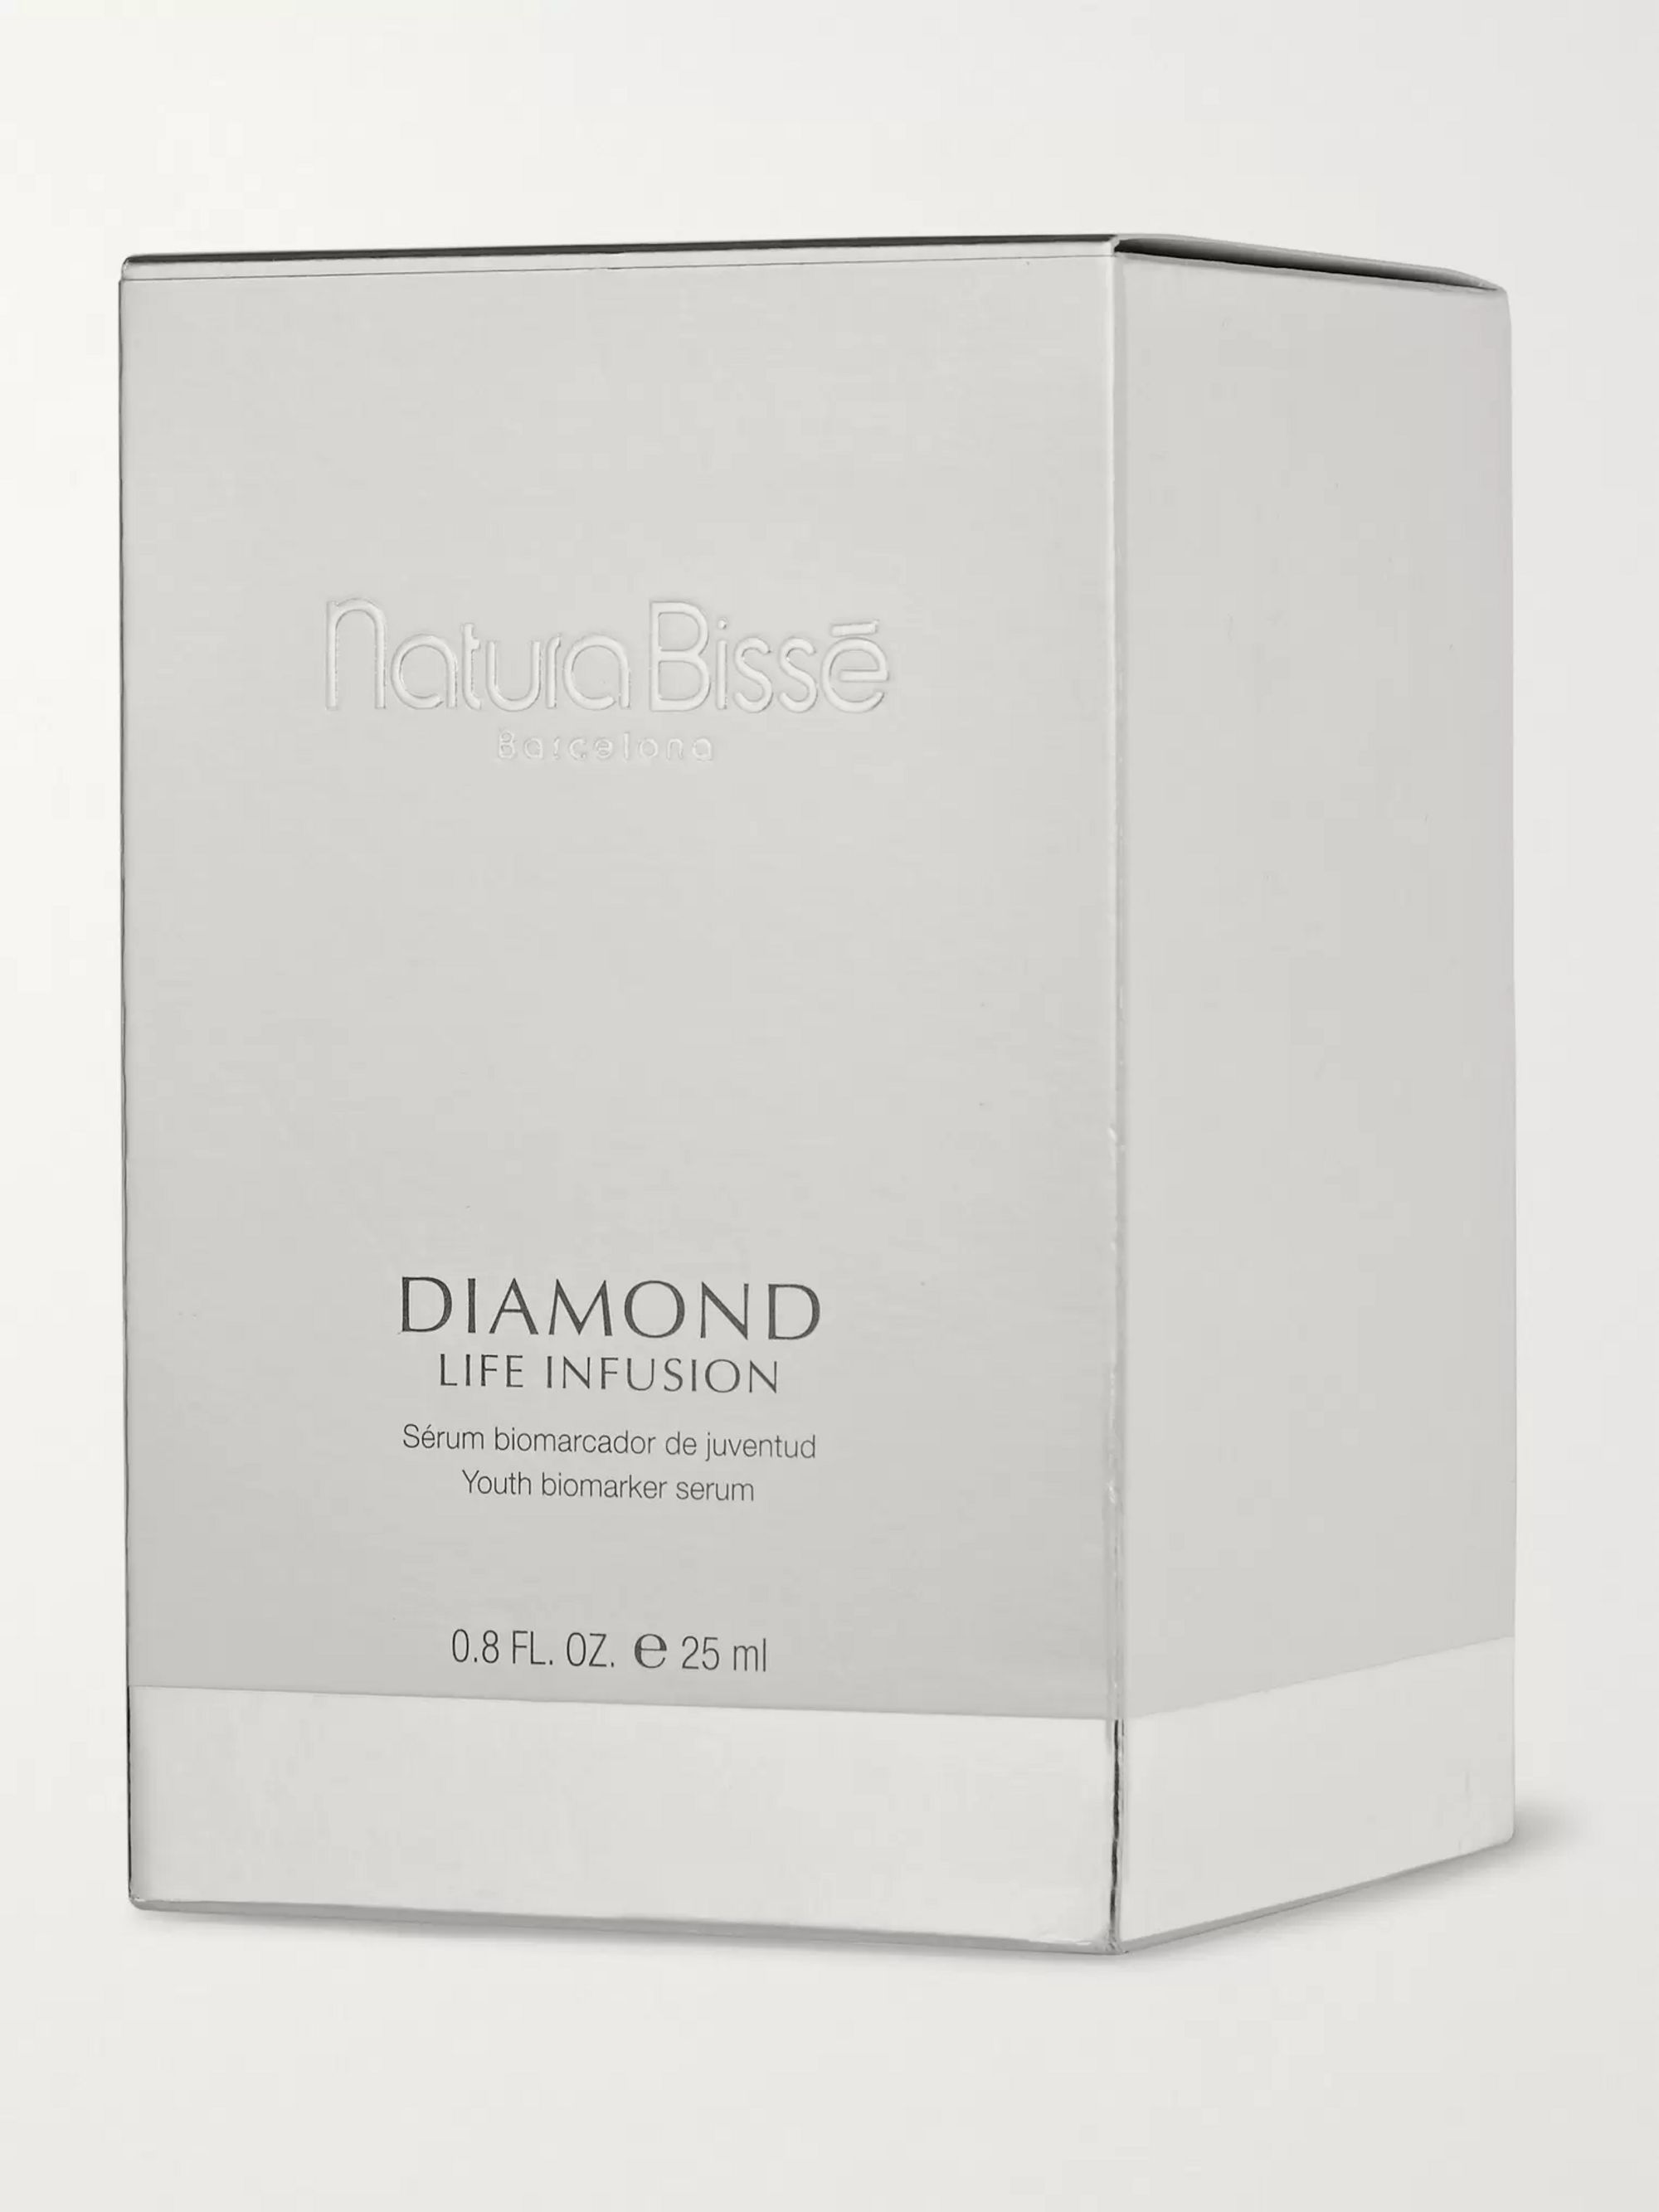 Natura Bissé Diamond Life Infusion, 25ml